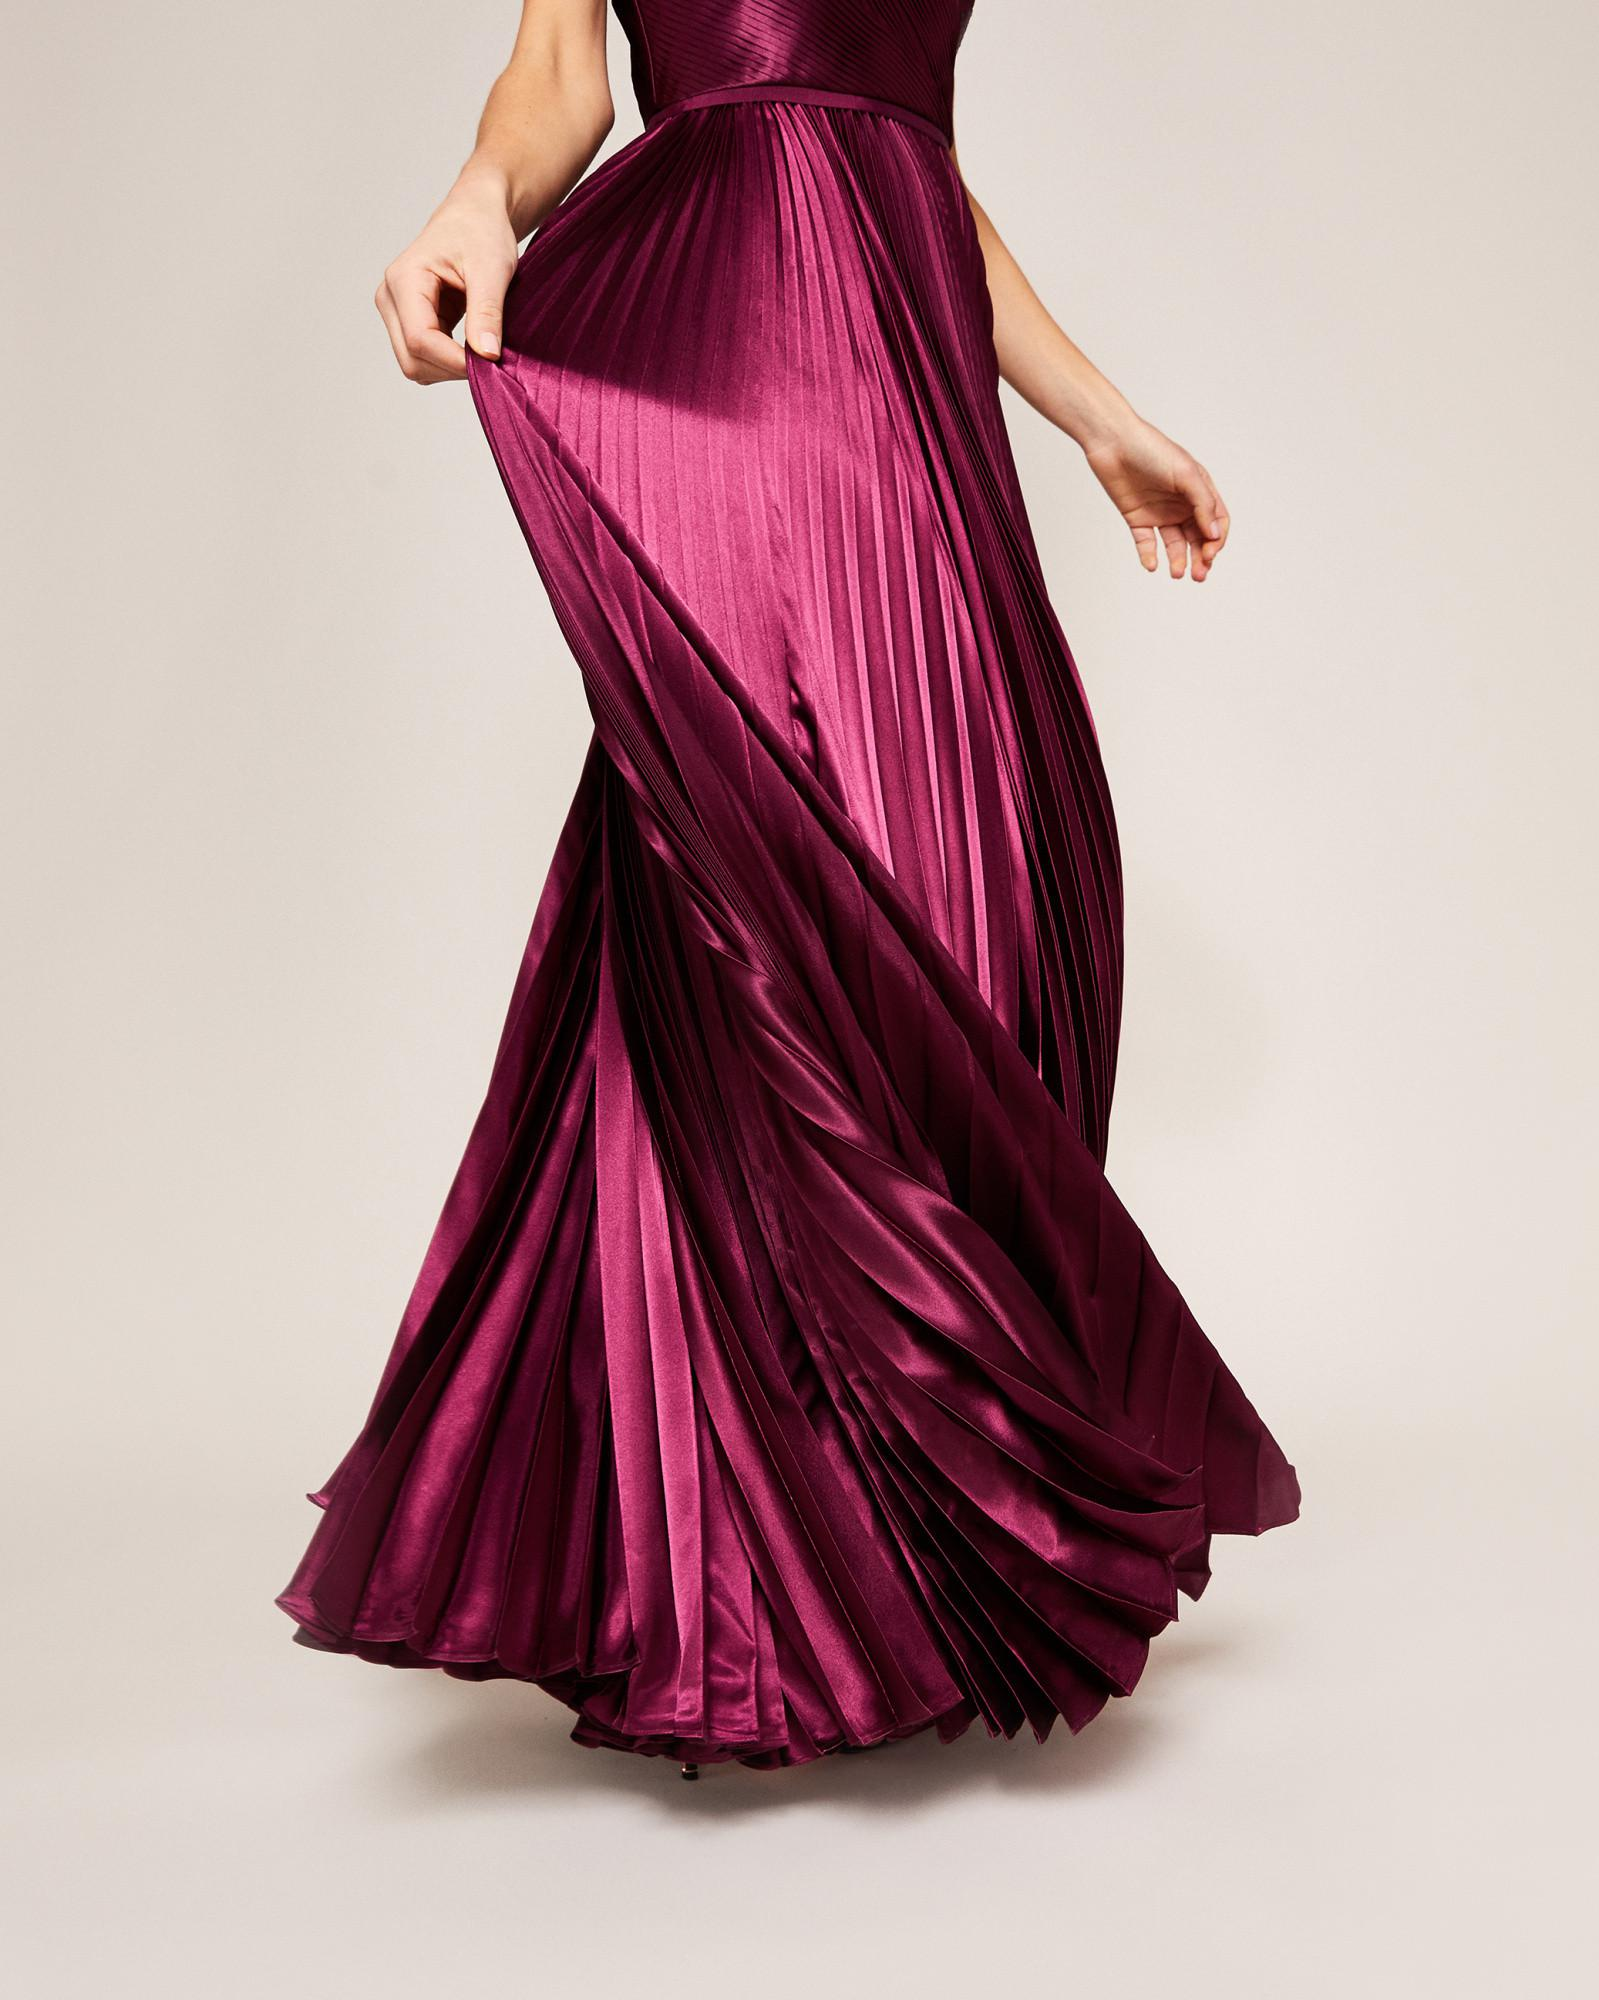 c02b9507cdb4 Lyst - Ted Baker Pleated Satin Maxi Dress in Purple